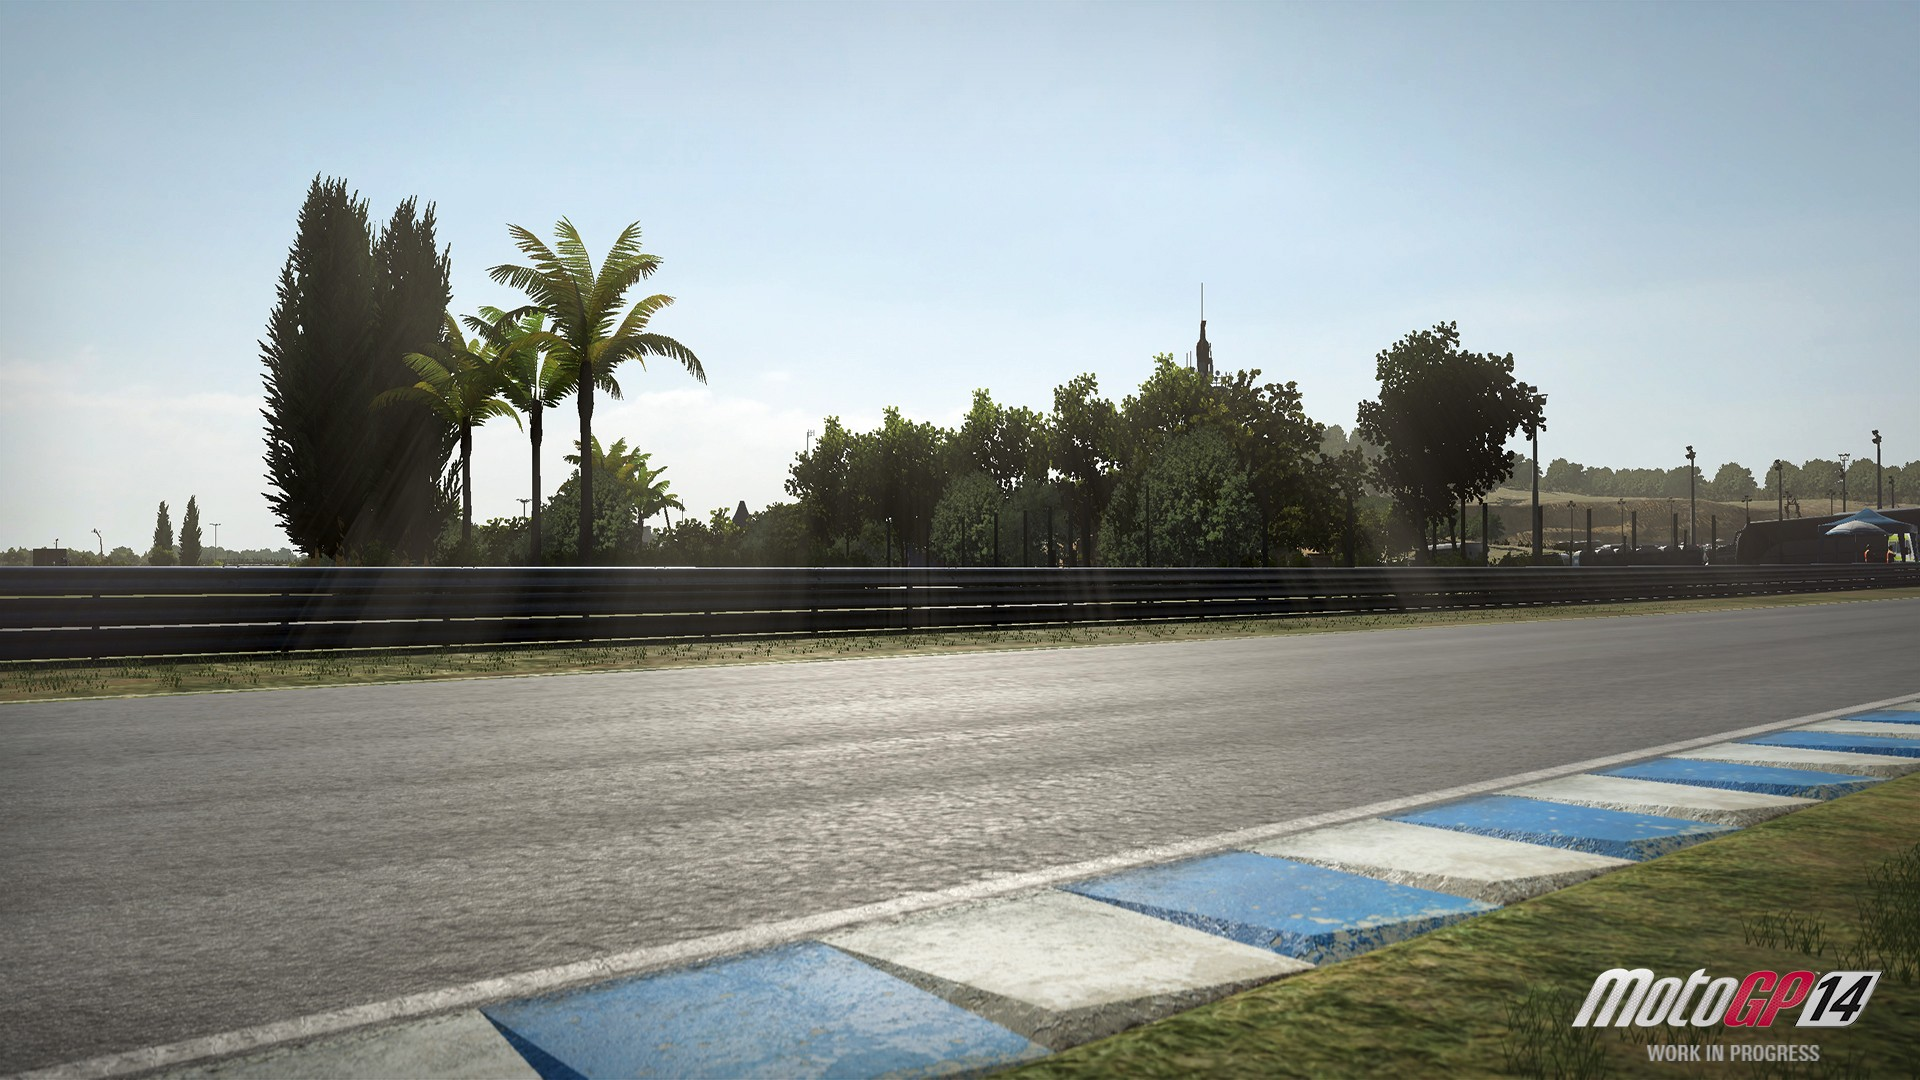 First Motogp 14 Playstation 4 Screenshots Released Graphics